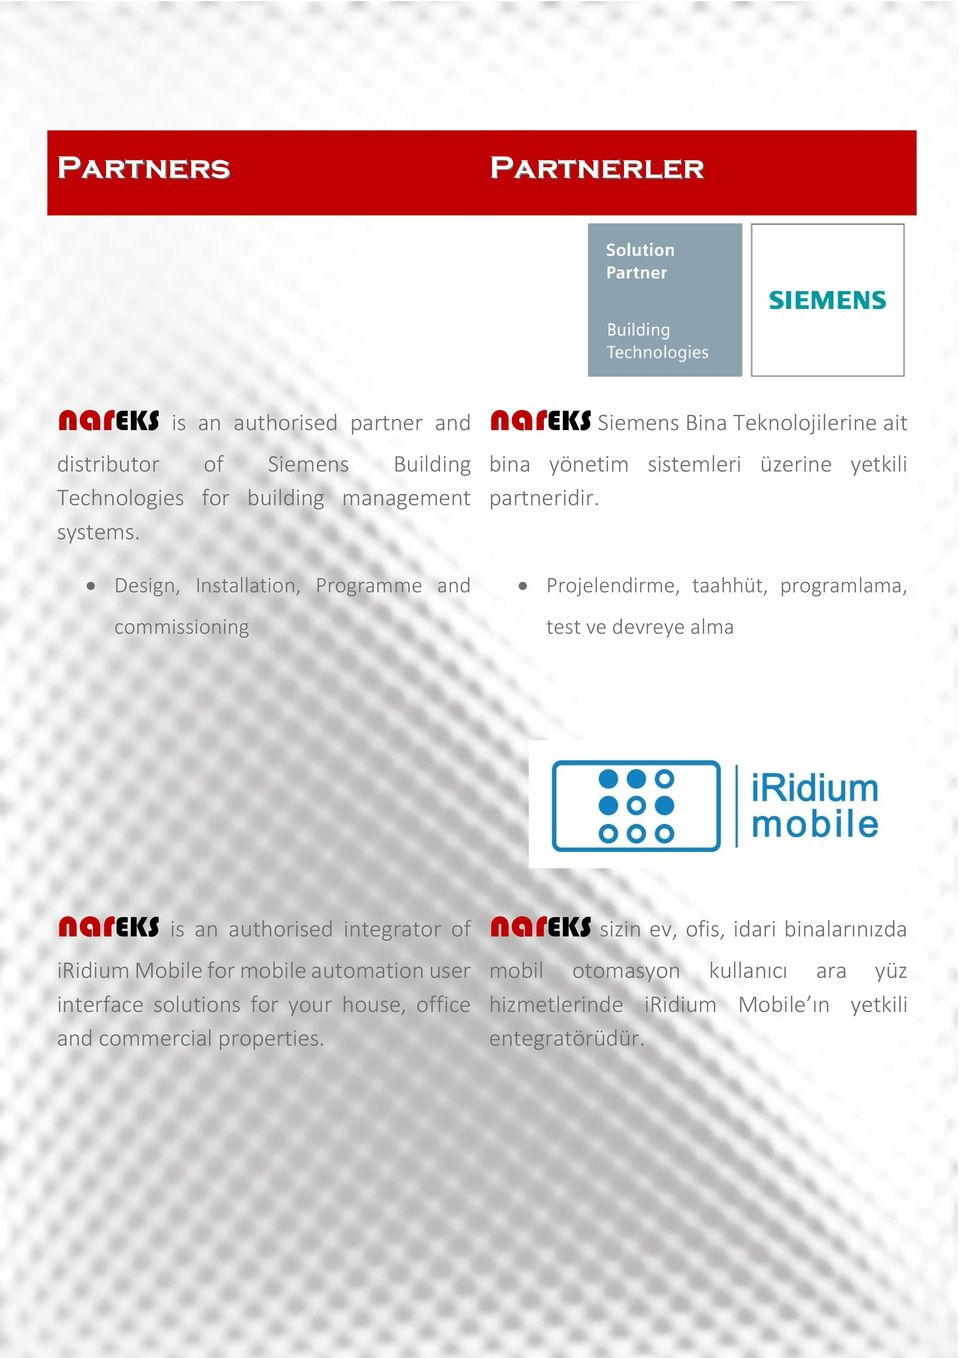 Projelendirme, taahhüt, programlama, test ve devreye alma nareks is an authorised integrator of iridium Mobile for mobile automation user interface